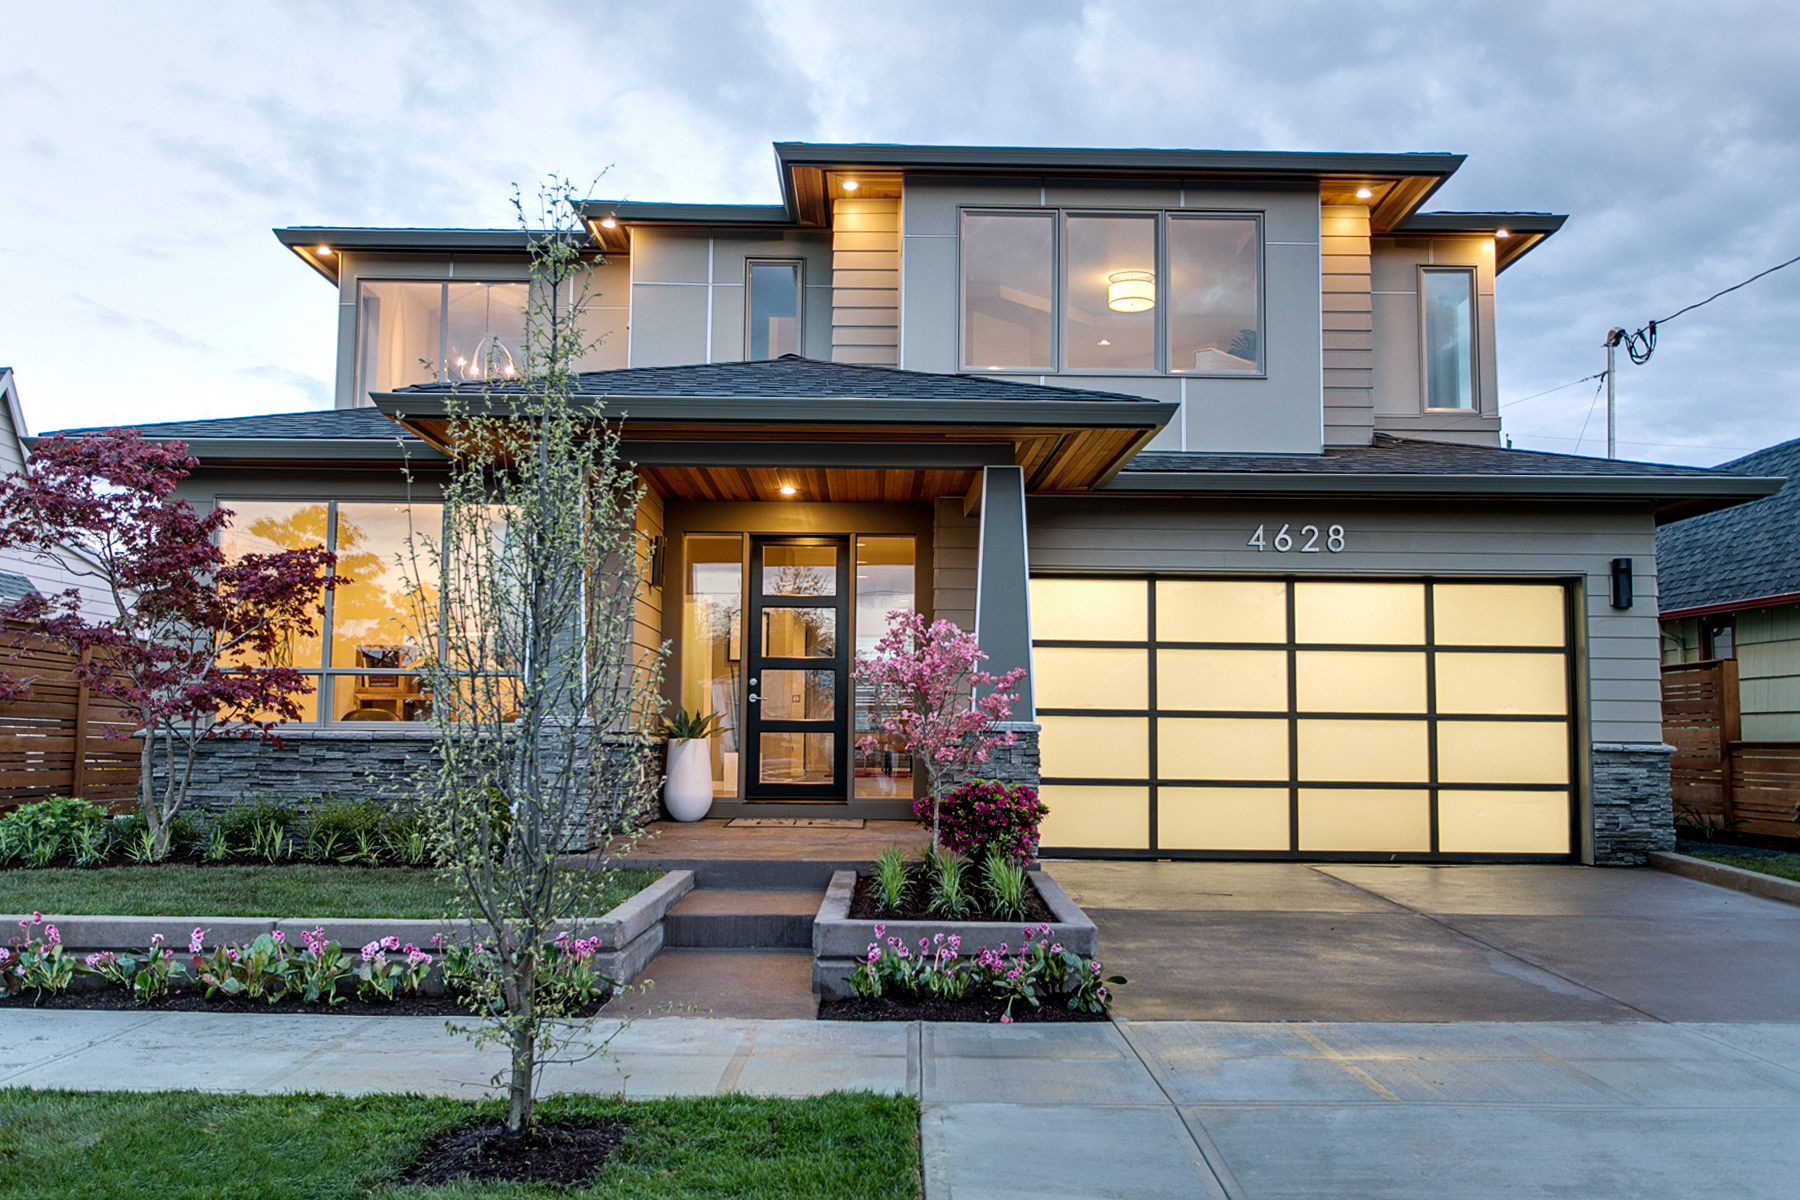 Get an Inside Look at Eight Amazing Modern Homes in ...